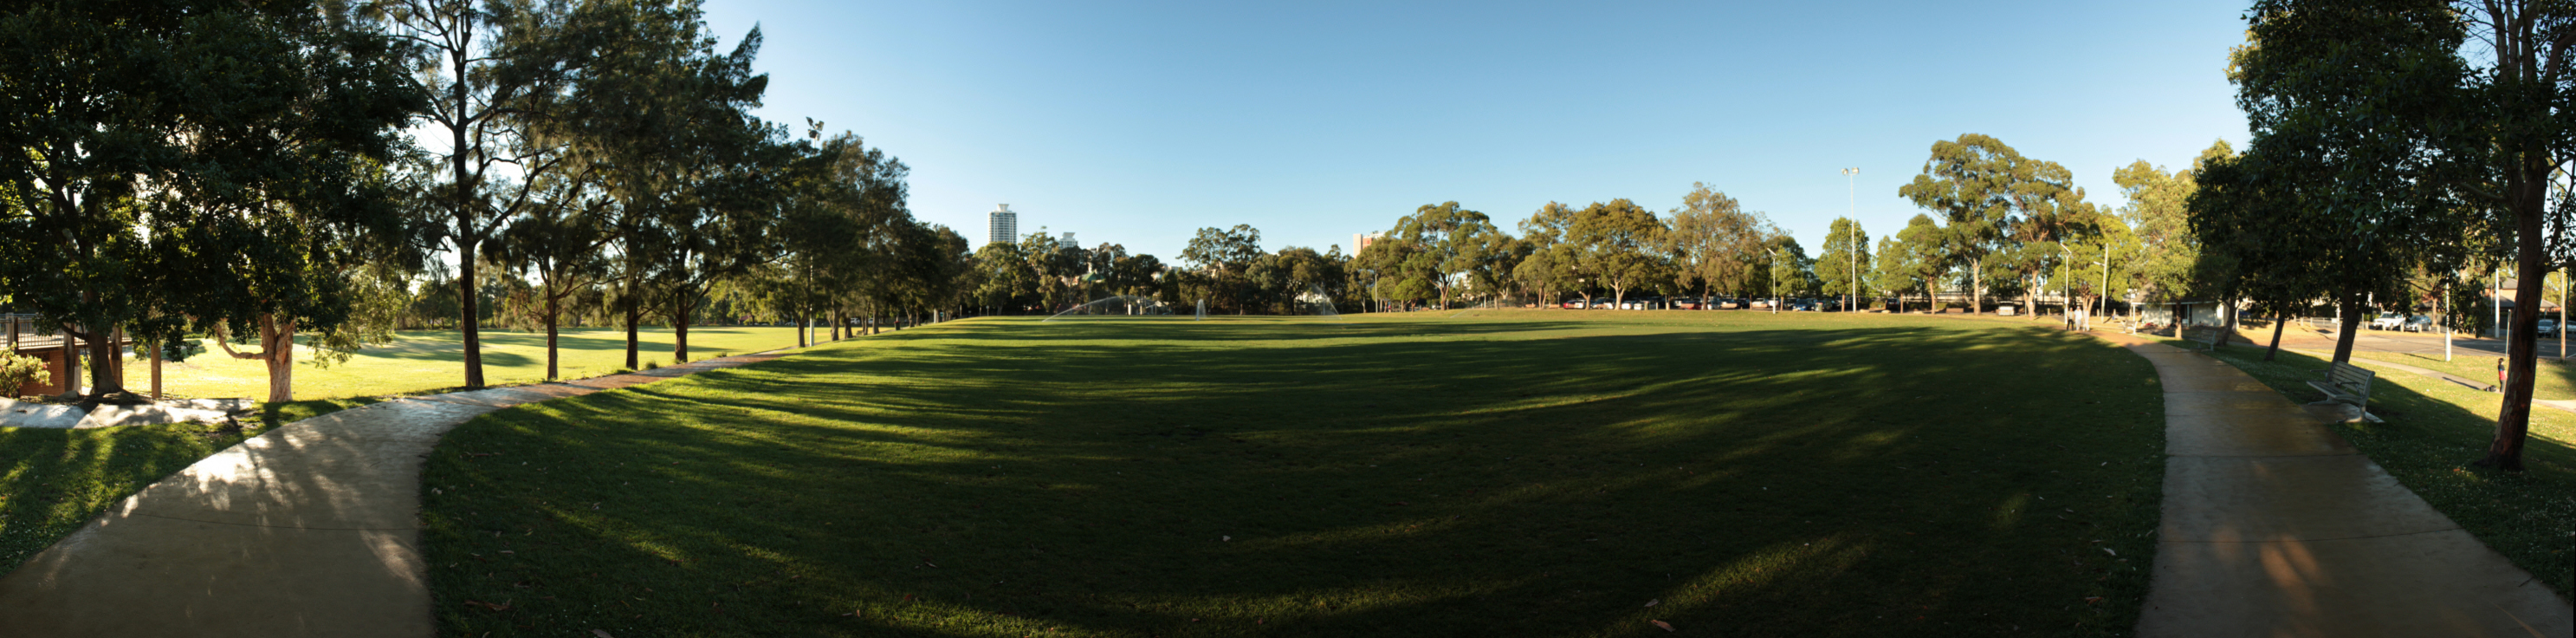 Crows Nest Naremburn Oval